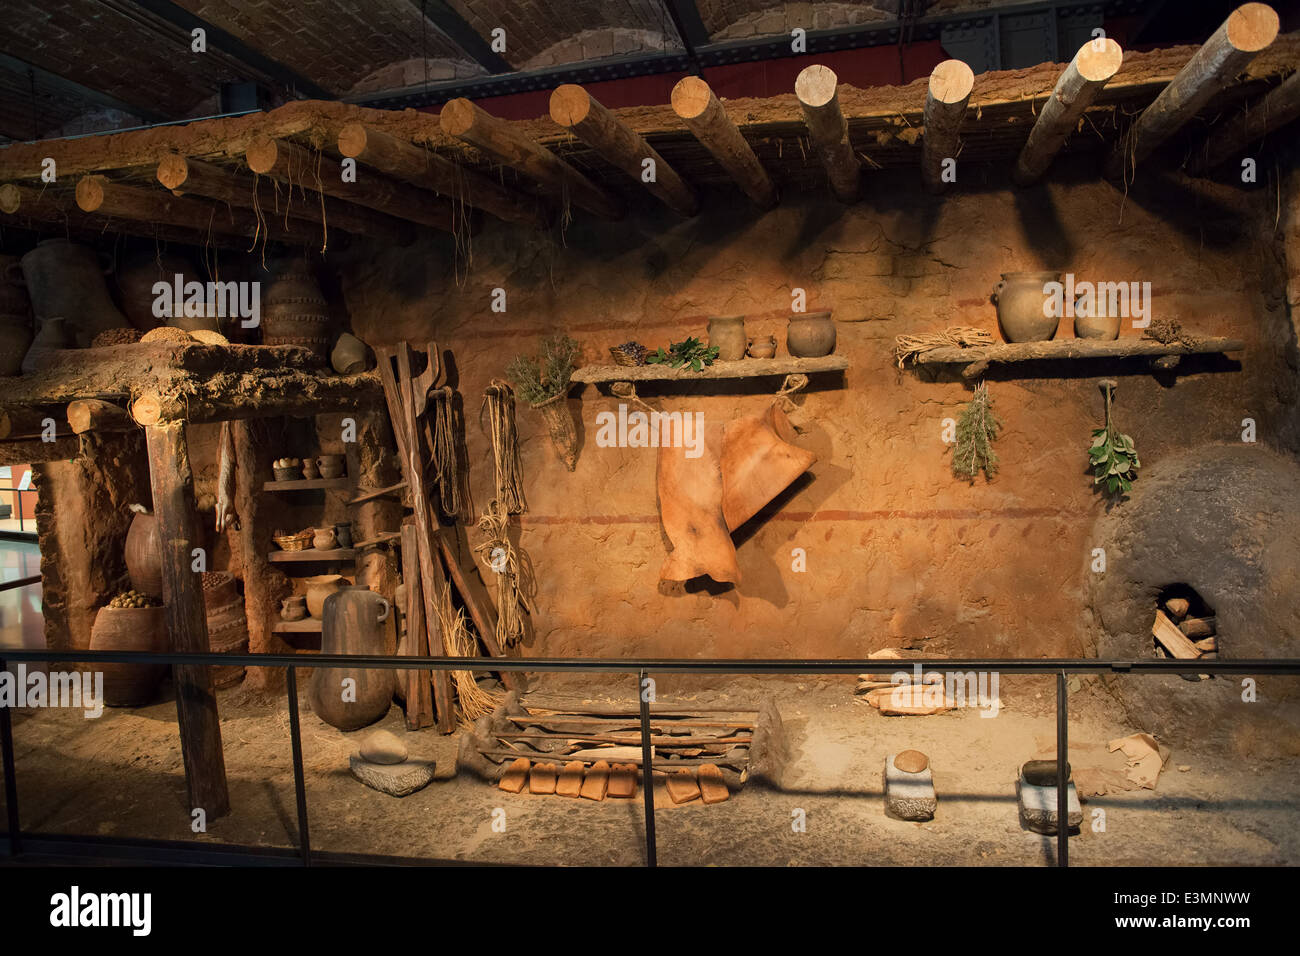 Traditional house in the Museum of the History of Catalonia interior in Barcelona, Spain. - Stock Image